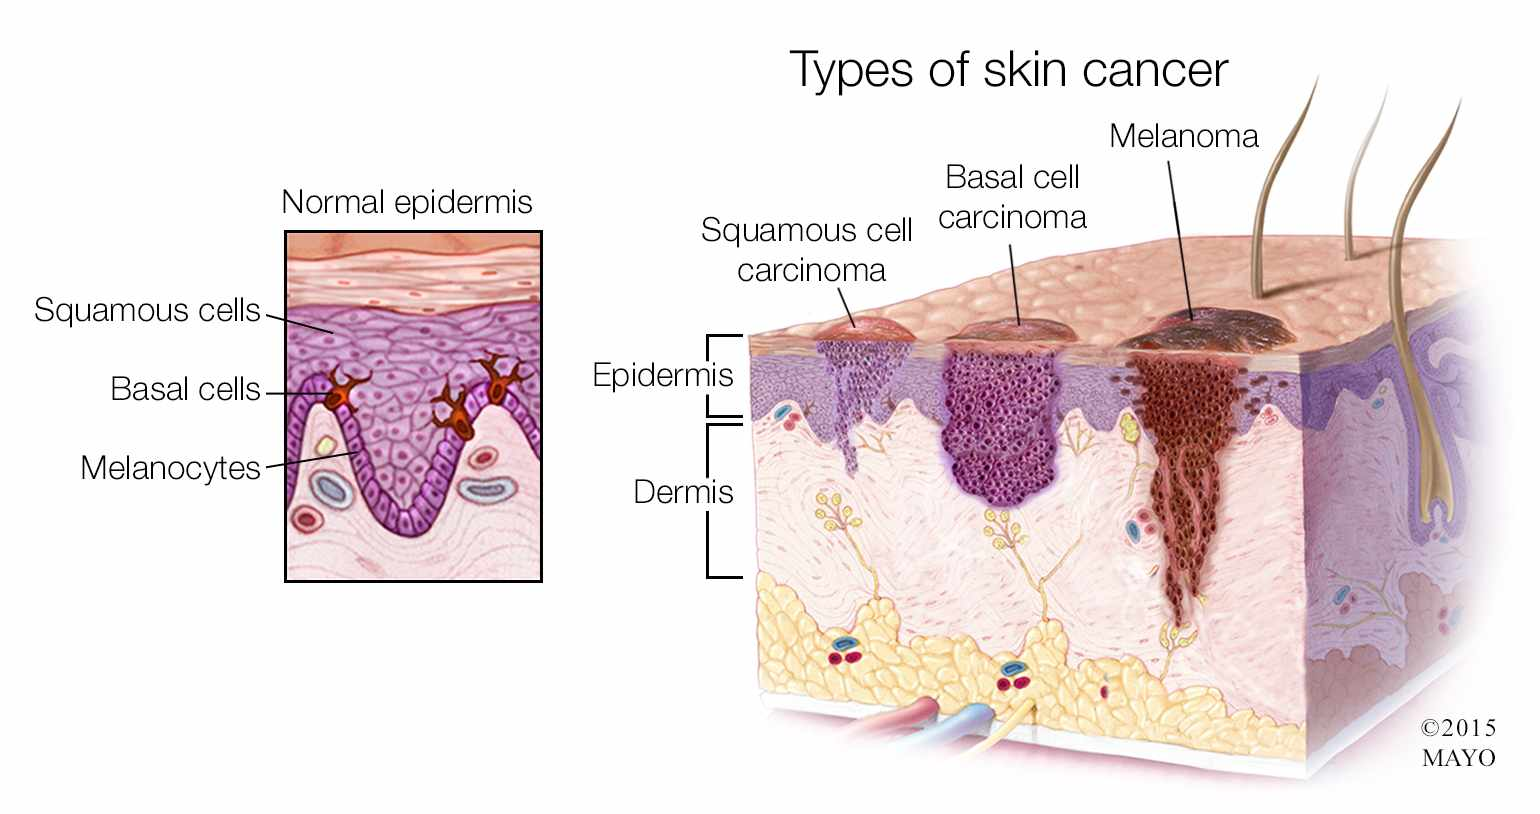 hight resolution of  medical illustration of the types of skin cancer melanoma basal cell carcinoma squamous